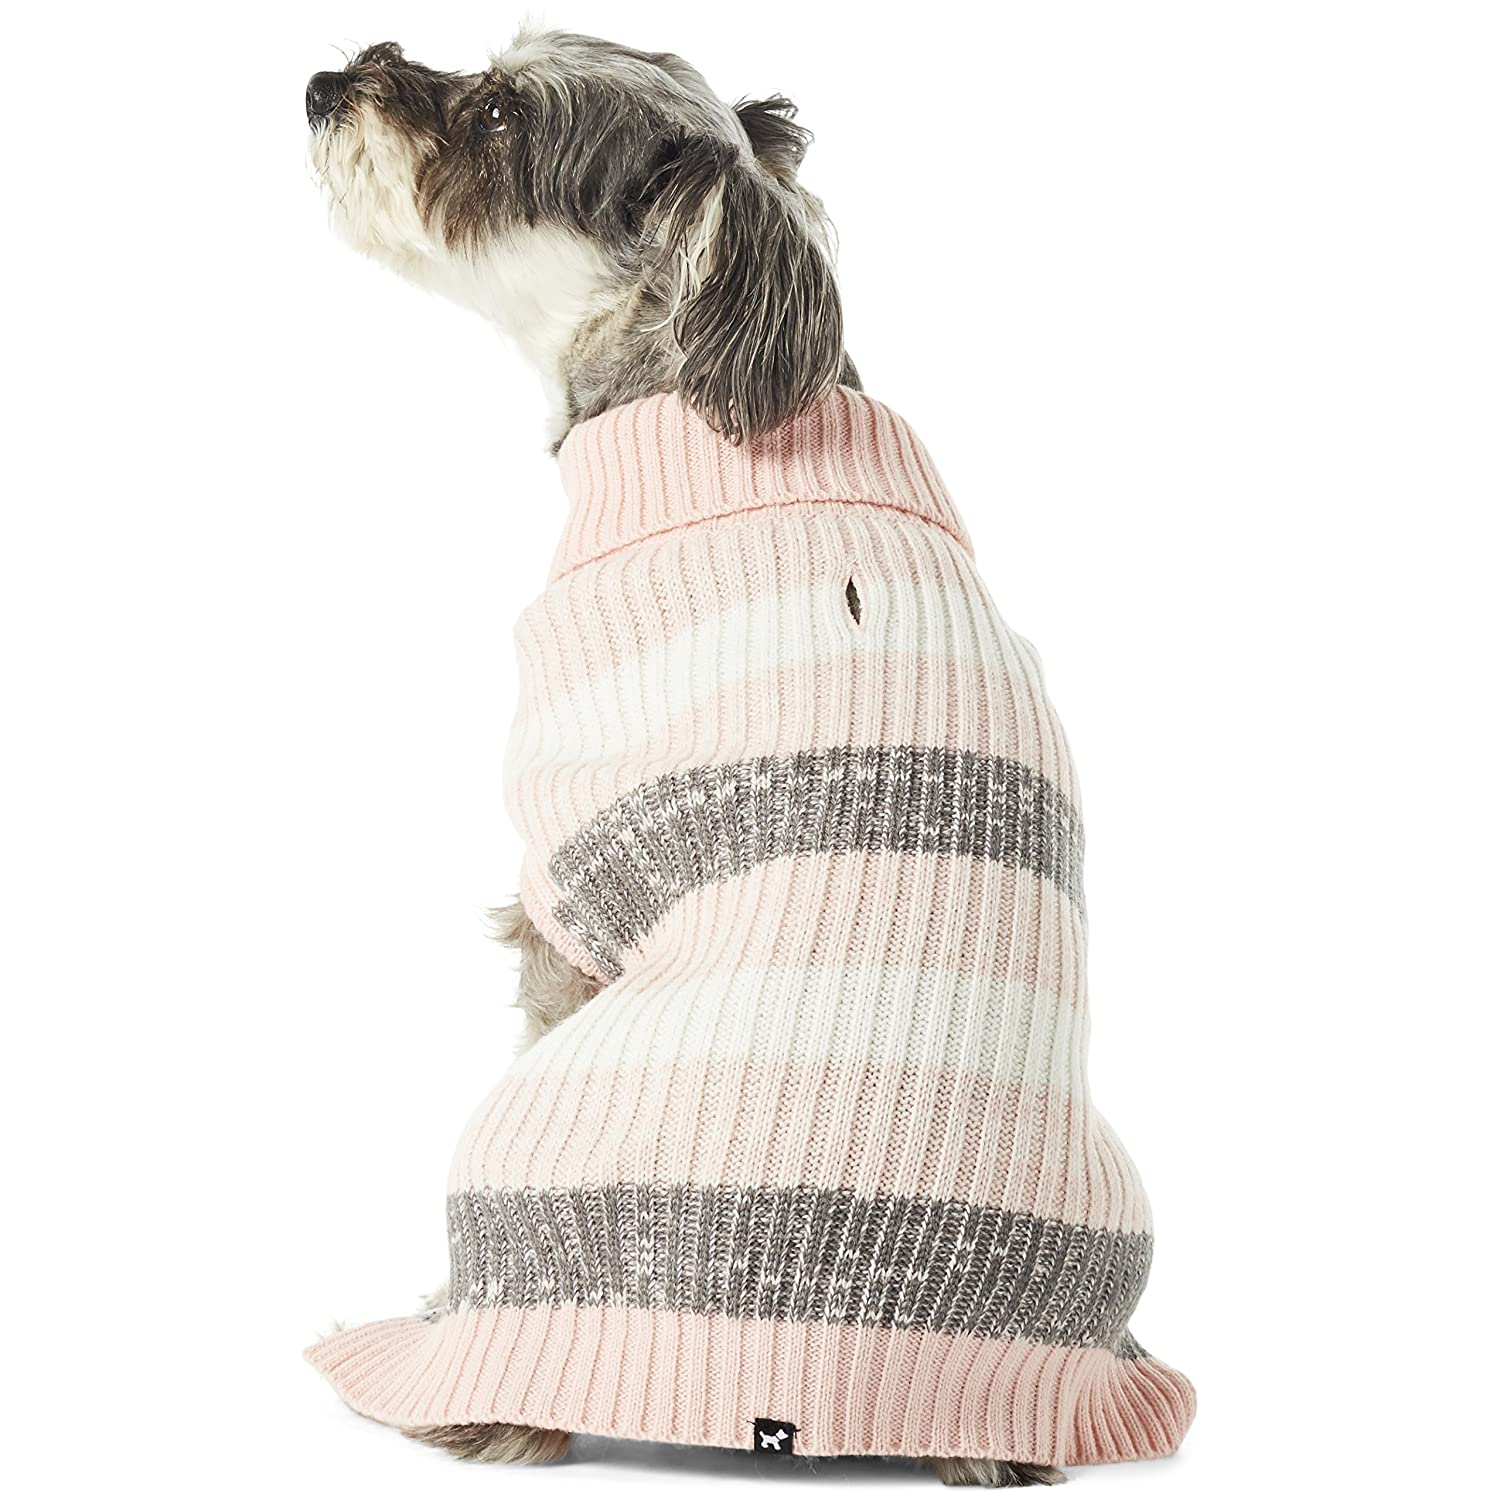 Crystal pink XS Crystal pink XS Hotel Doggy Gradient Striped Turtleneck Sweater Crystal pink XS